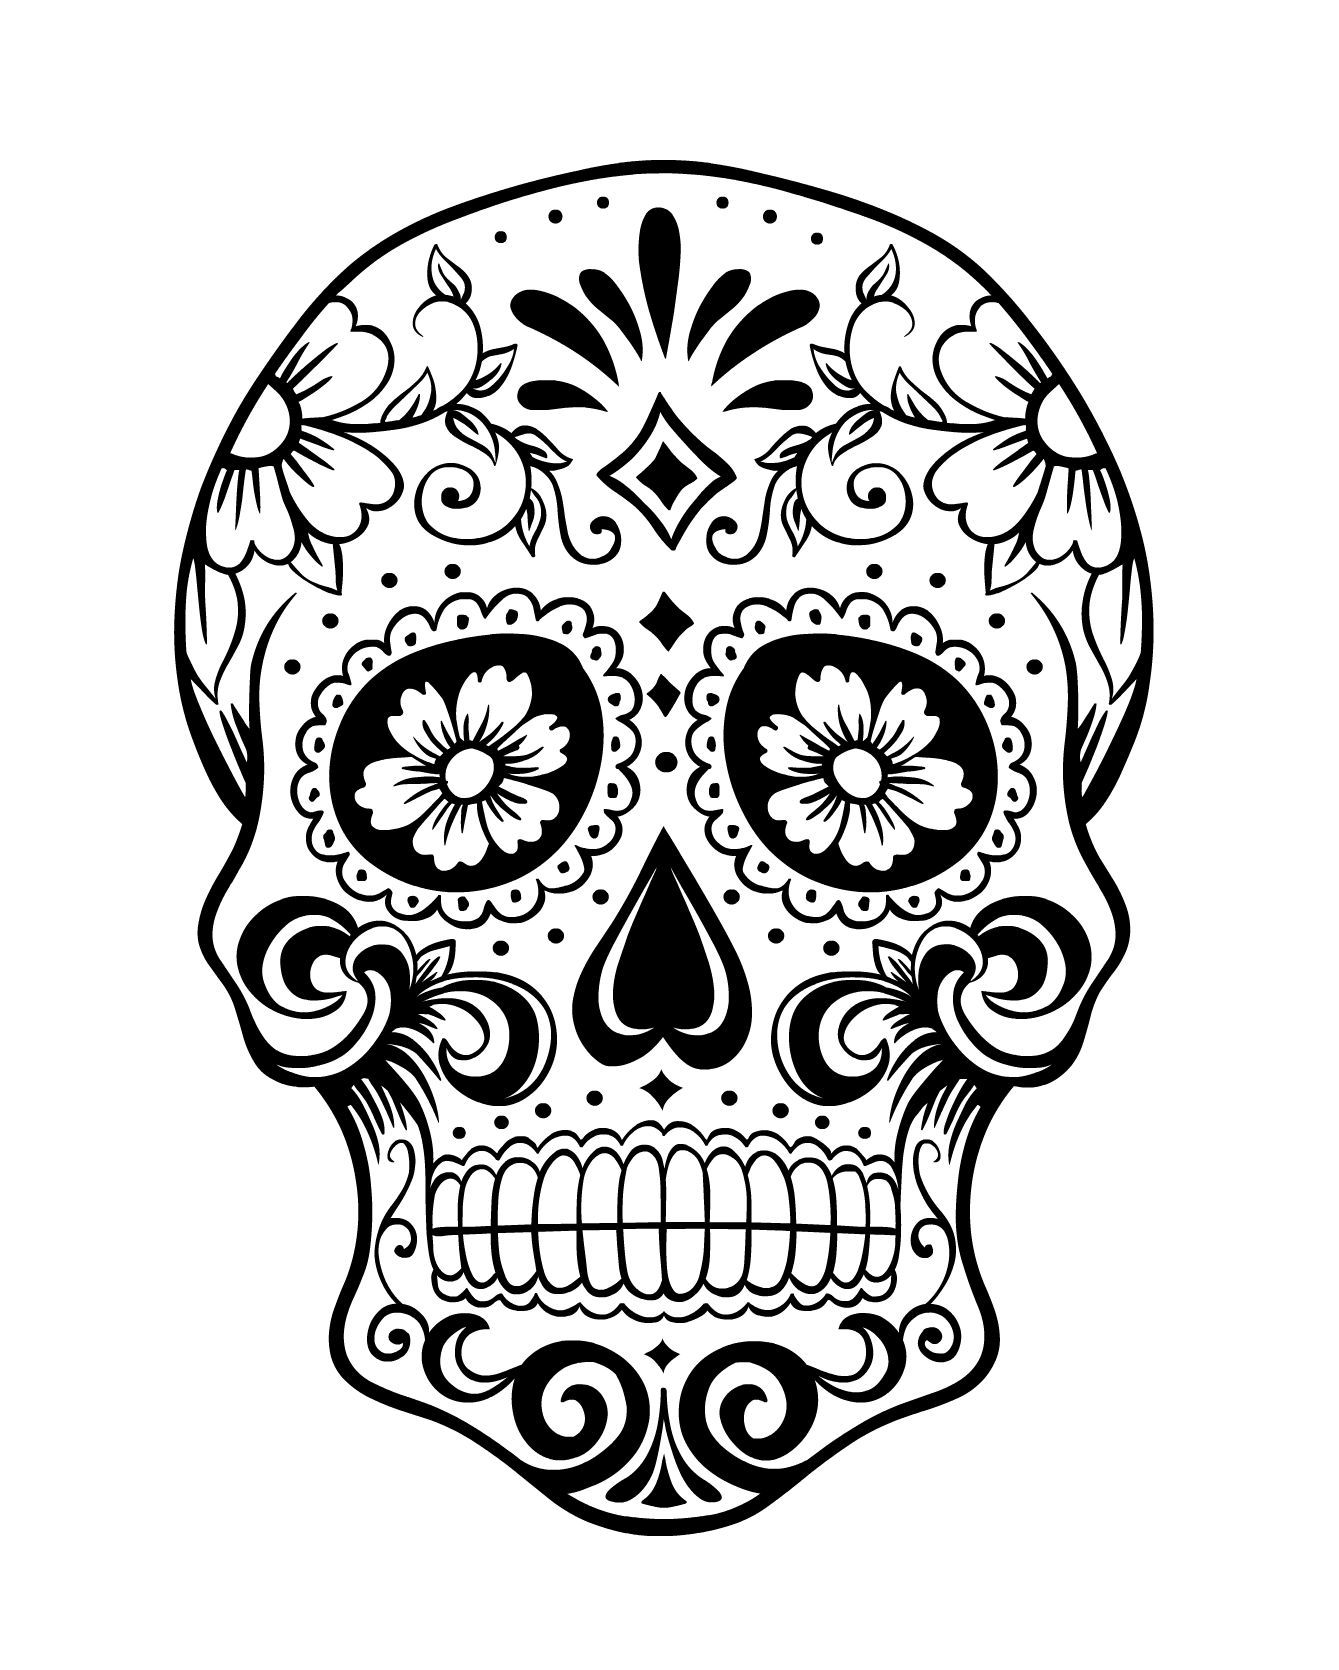 Day of the Dead Skull Coloring Page 1 | Because I Can | Pinterest ...